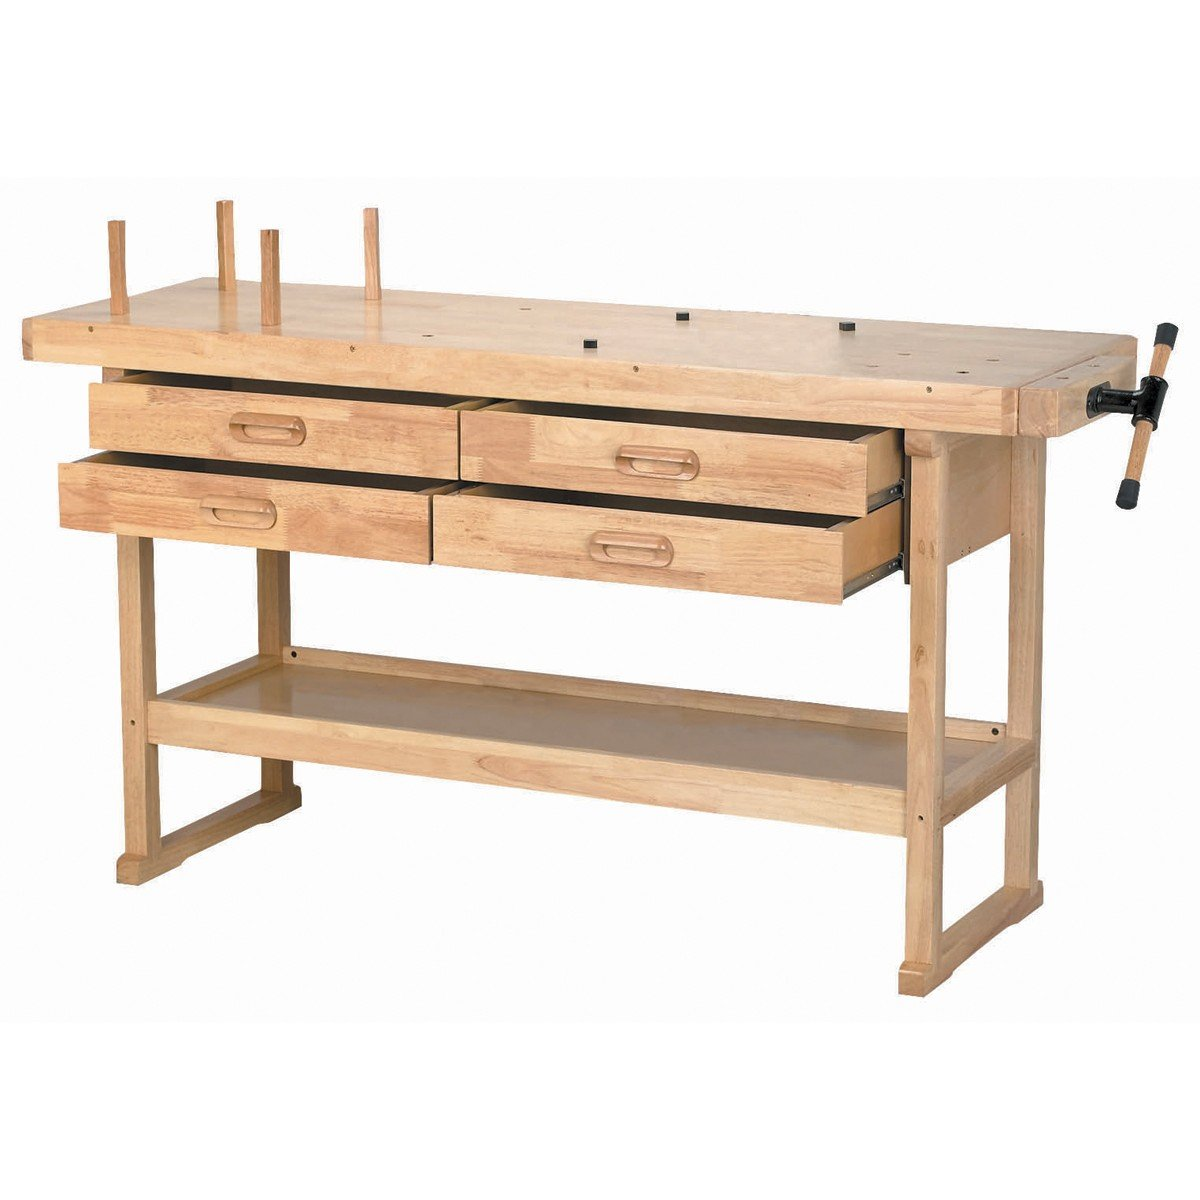 Windsor Design Workbench with 4 Drawers